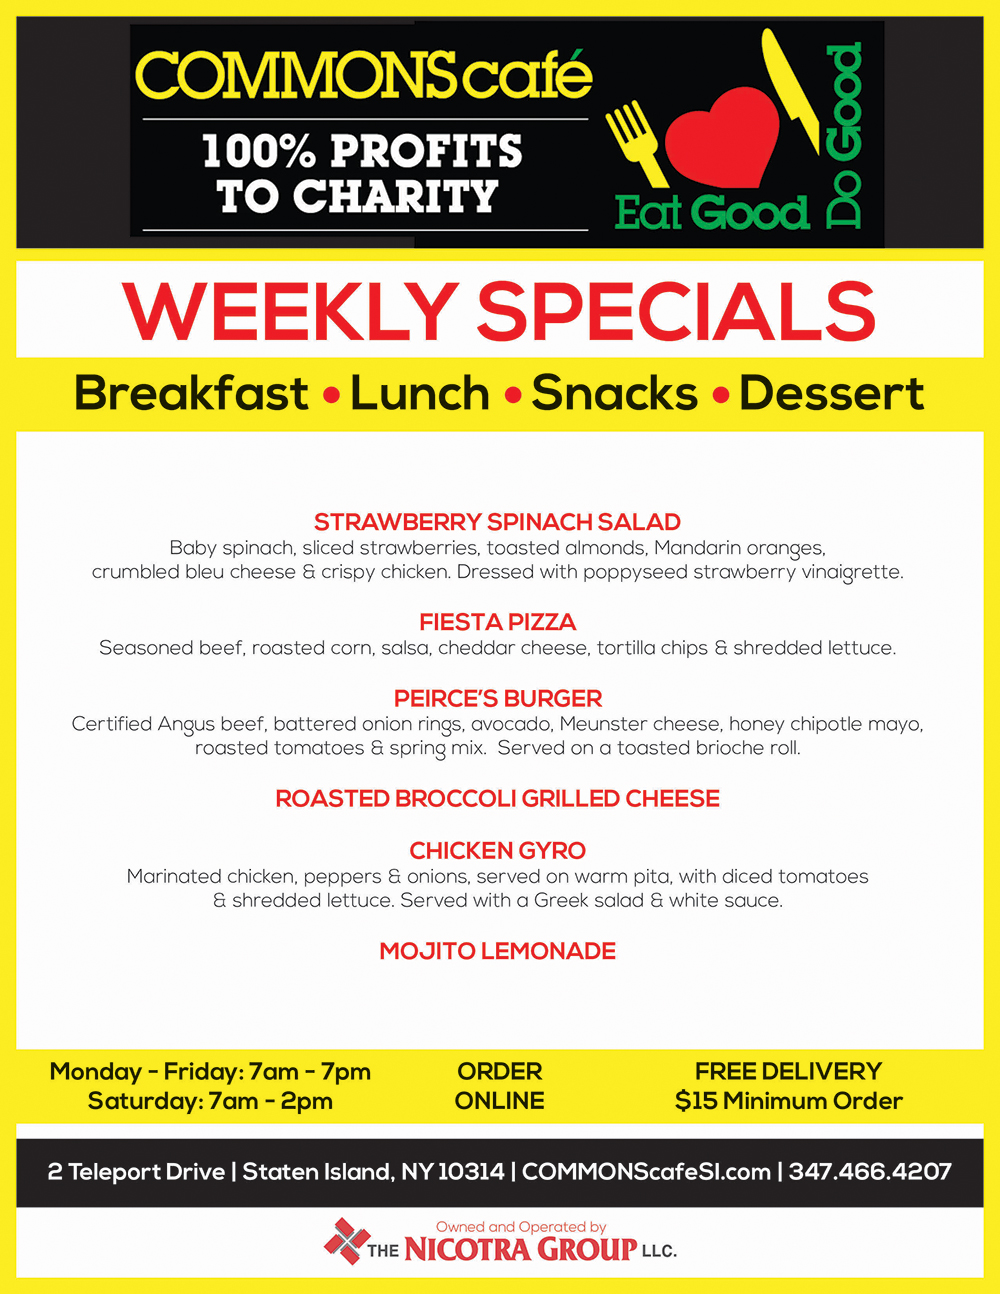 COMMONS CAFE WEEKLY SPECIALS JUNE 20 - JUN 26